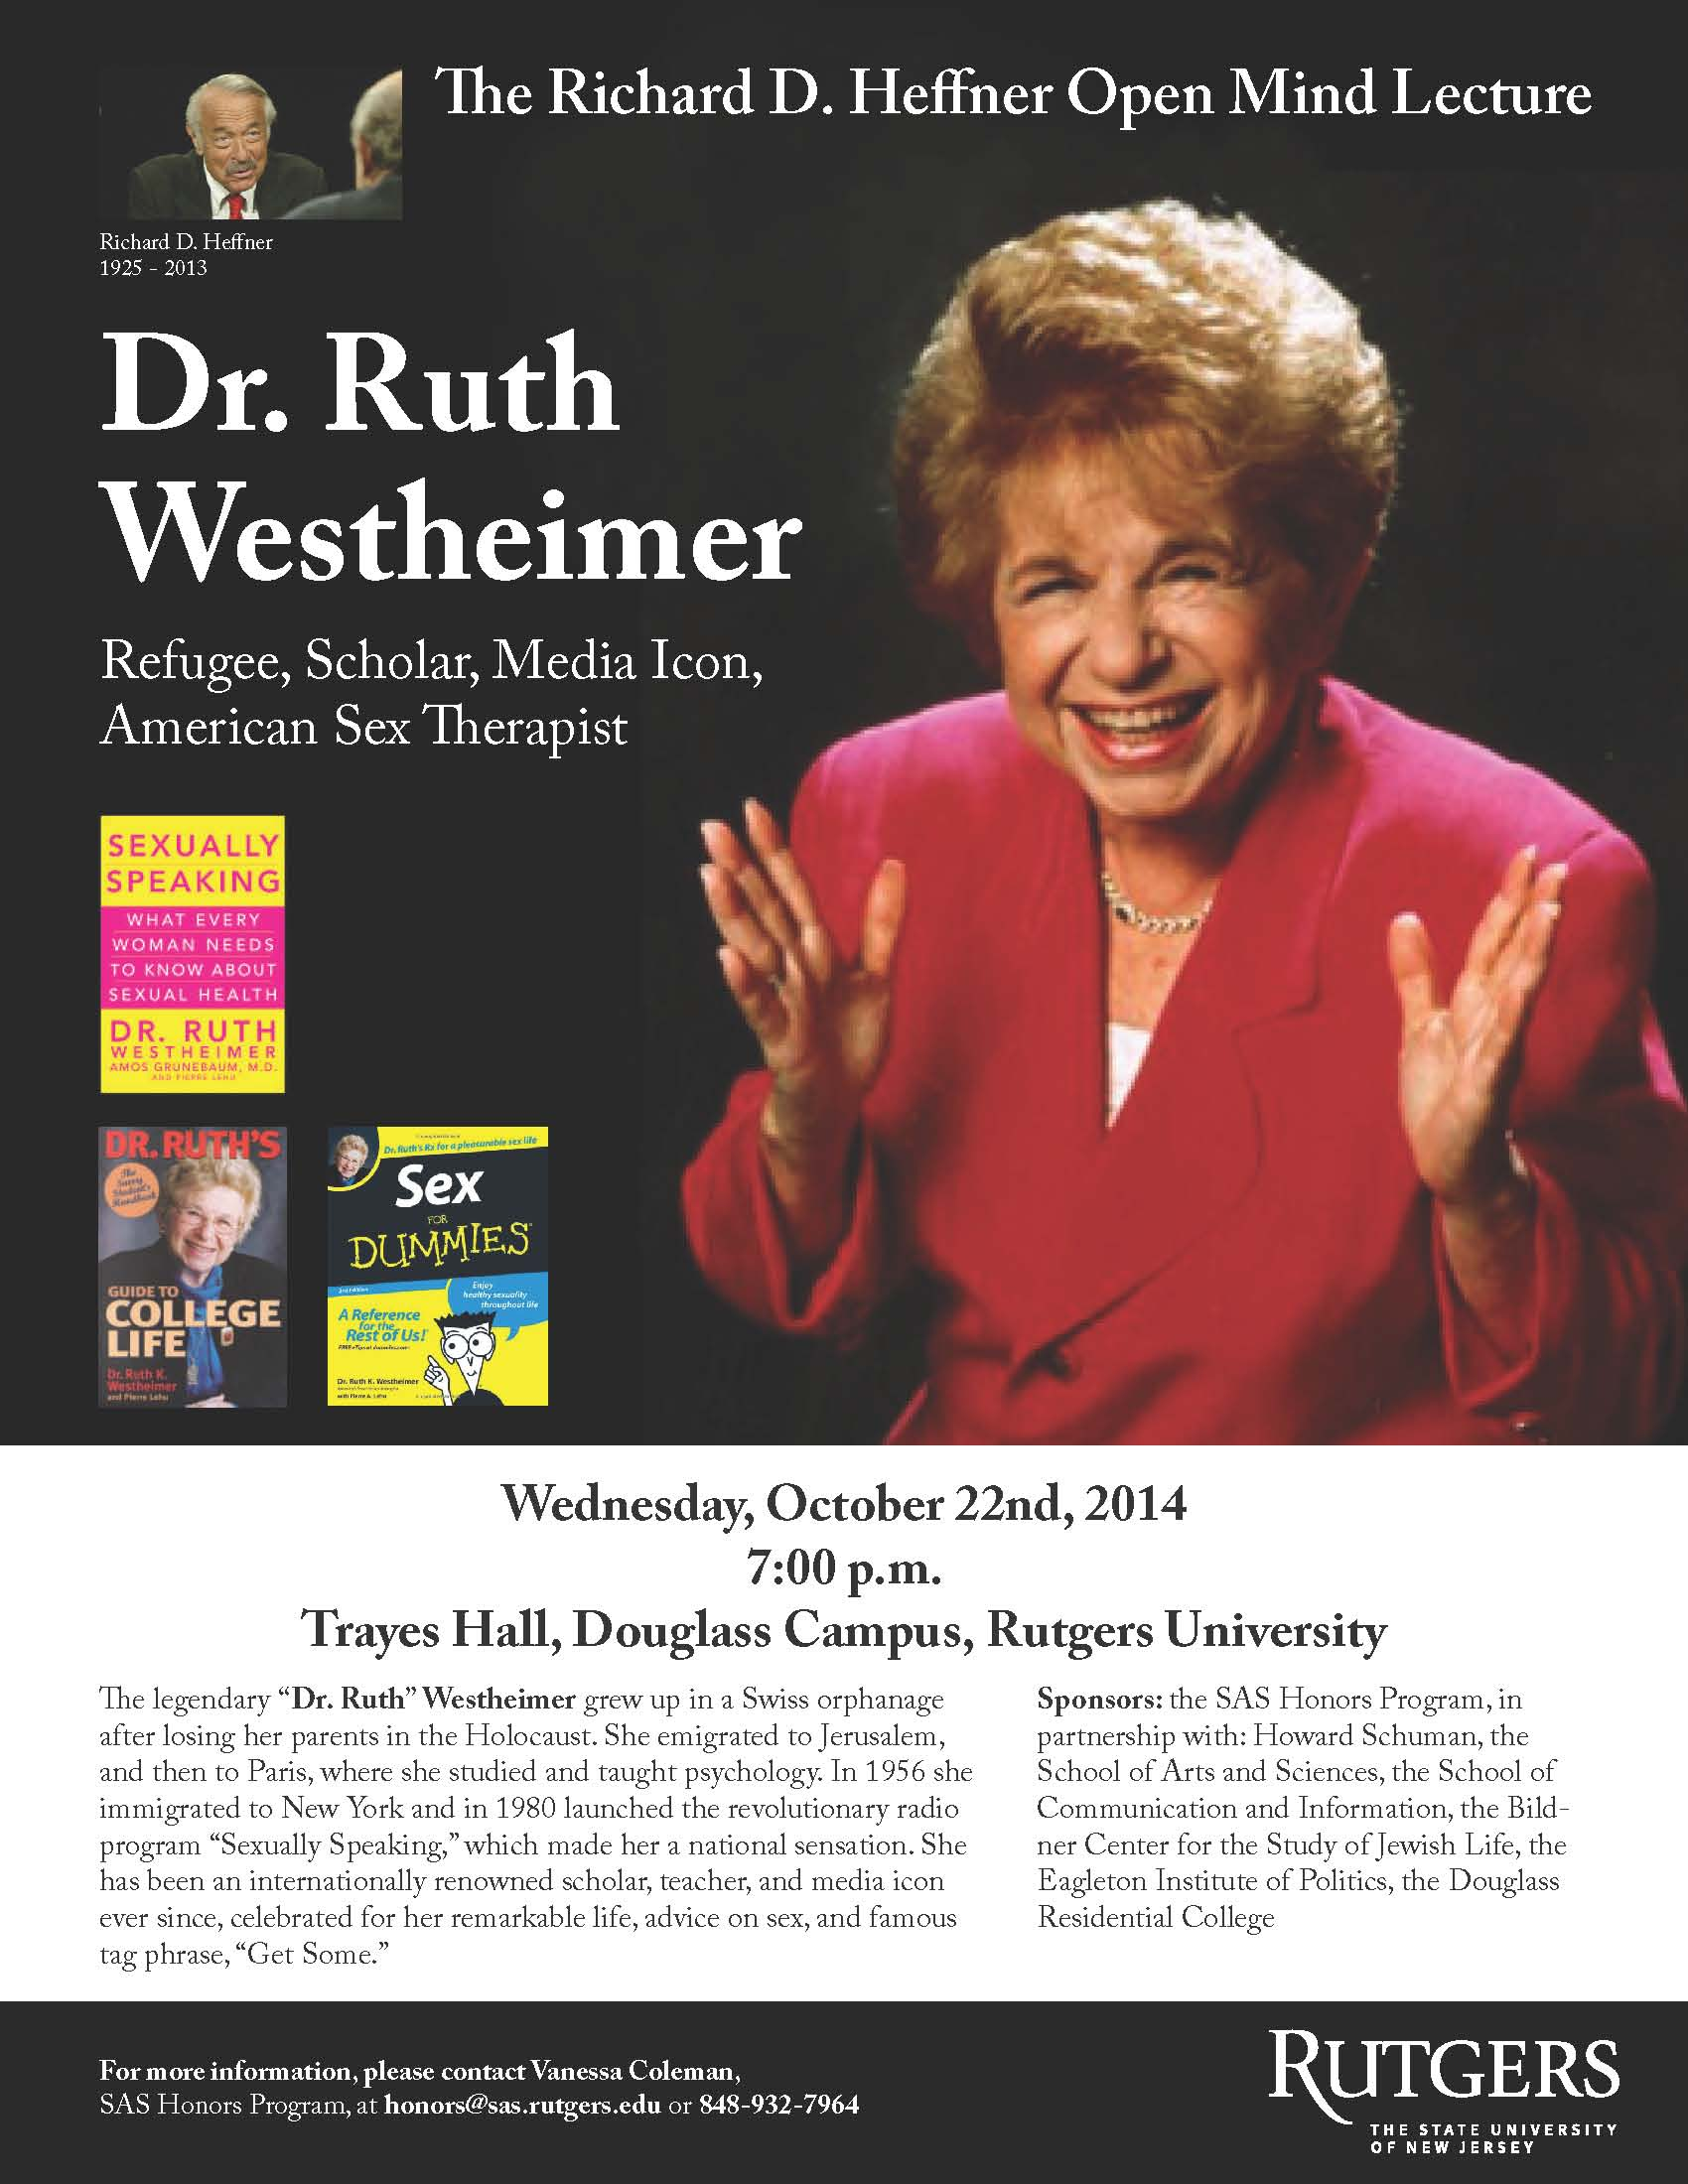 Dr. Ruth Lecture